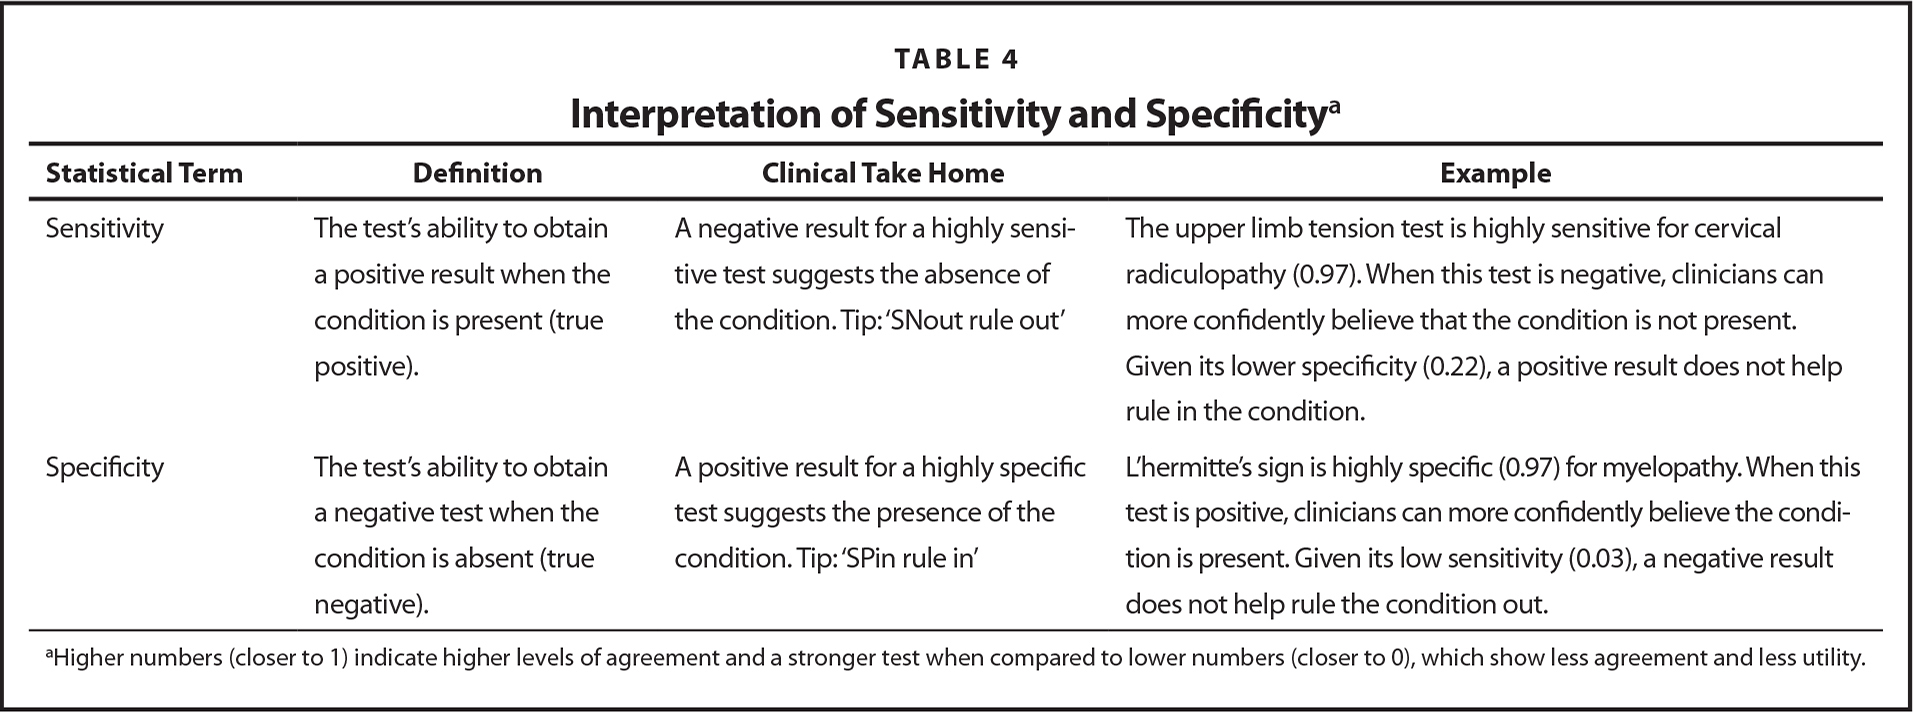 Interpretation of Sensitivity and Specificitya